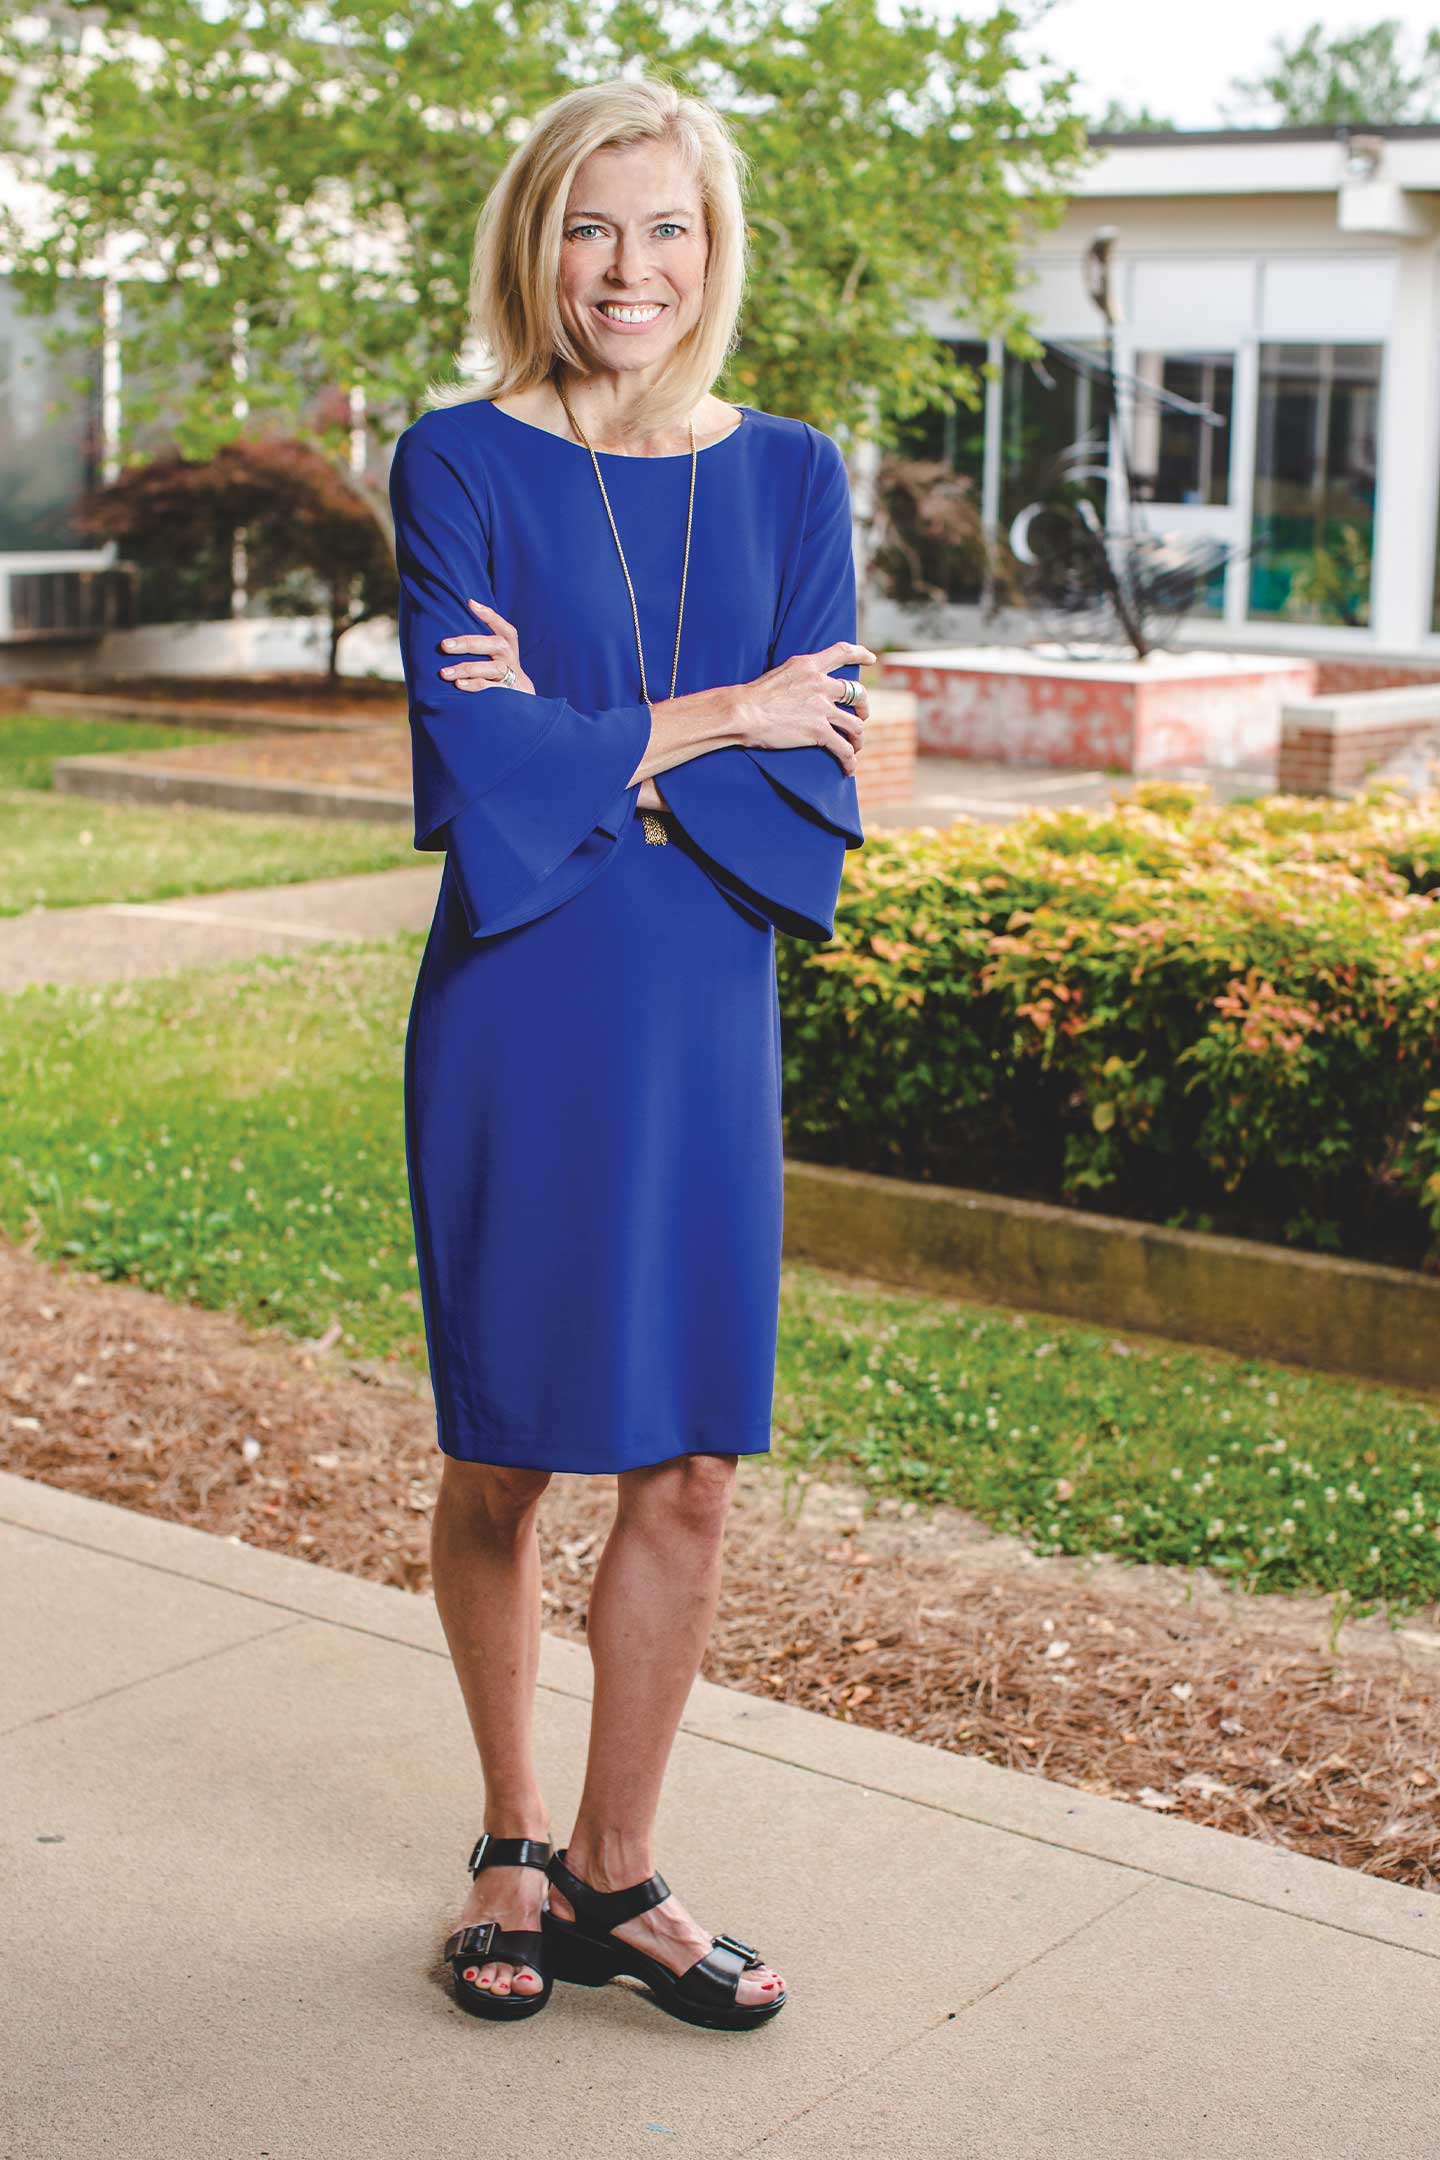 Dr. Rebecca Ashford President, Chattanooga State Community College chattanooga business woman